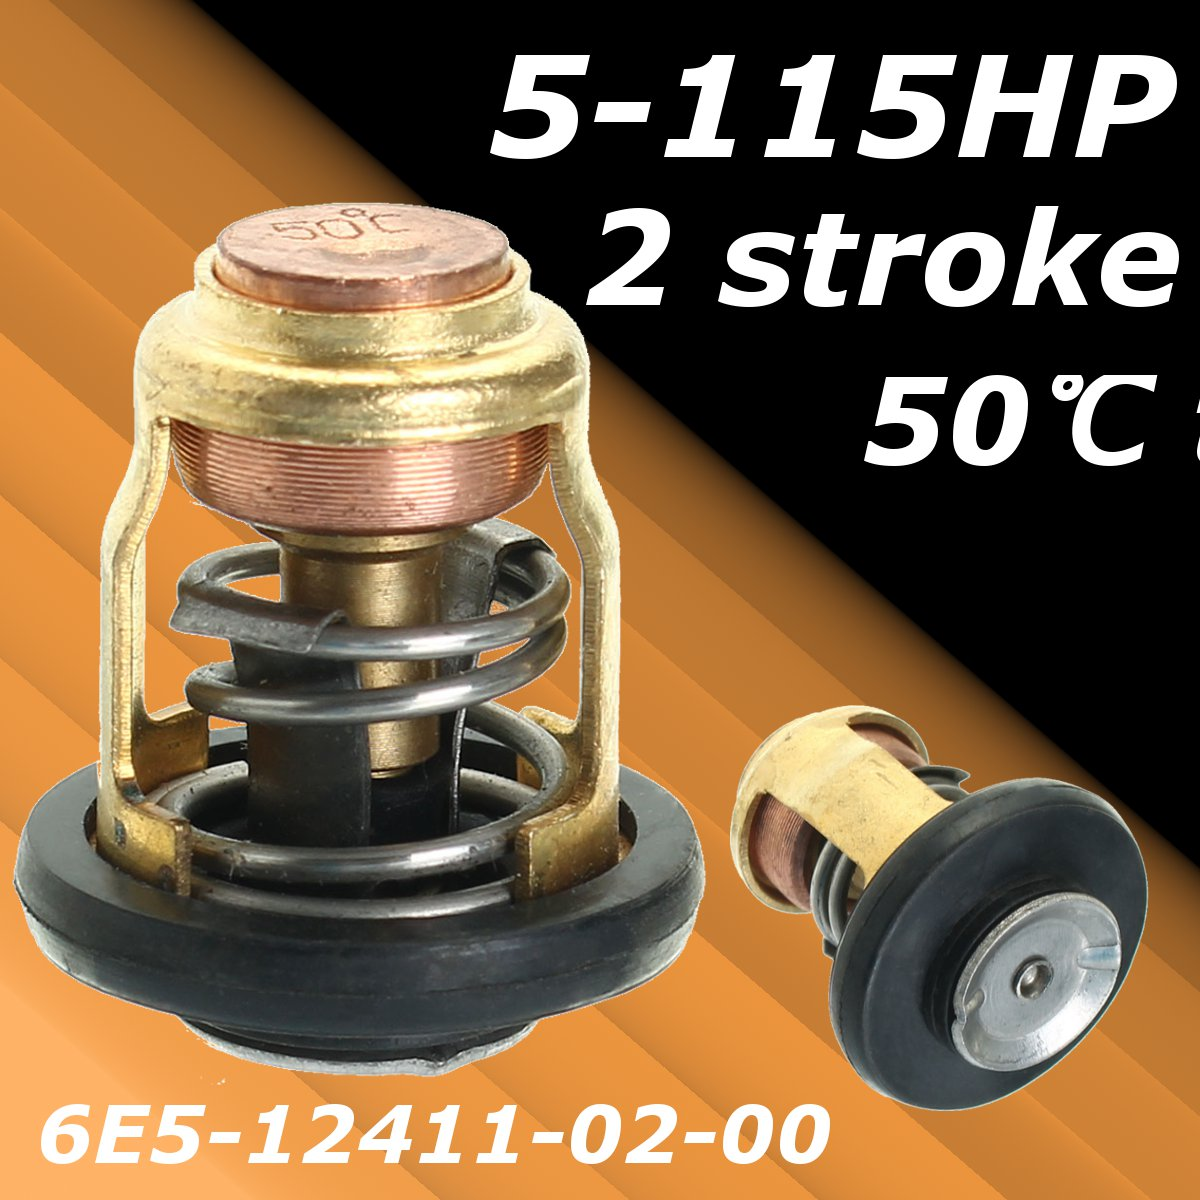 1PCS/2PCS 4HP 5HP 6HP 15HP 30HP Boat Engine Thermostat For SUZUKI Outboard Motor Engine Part